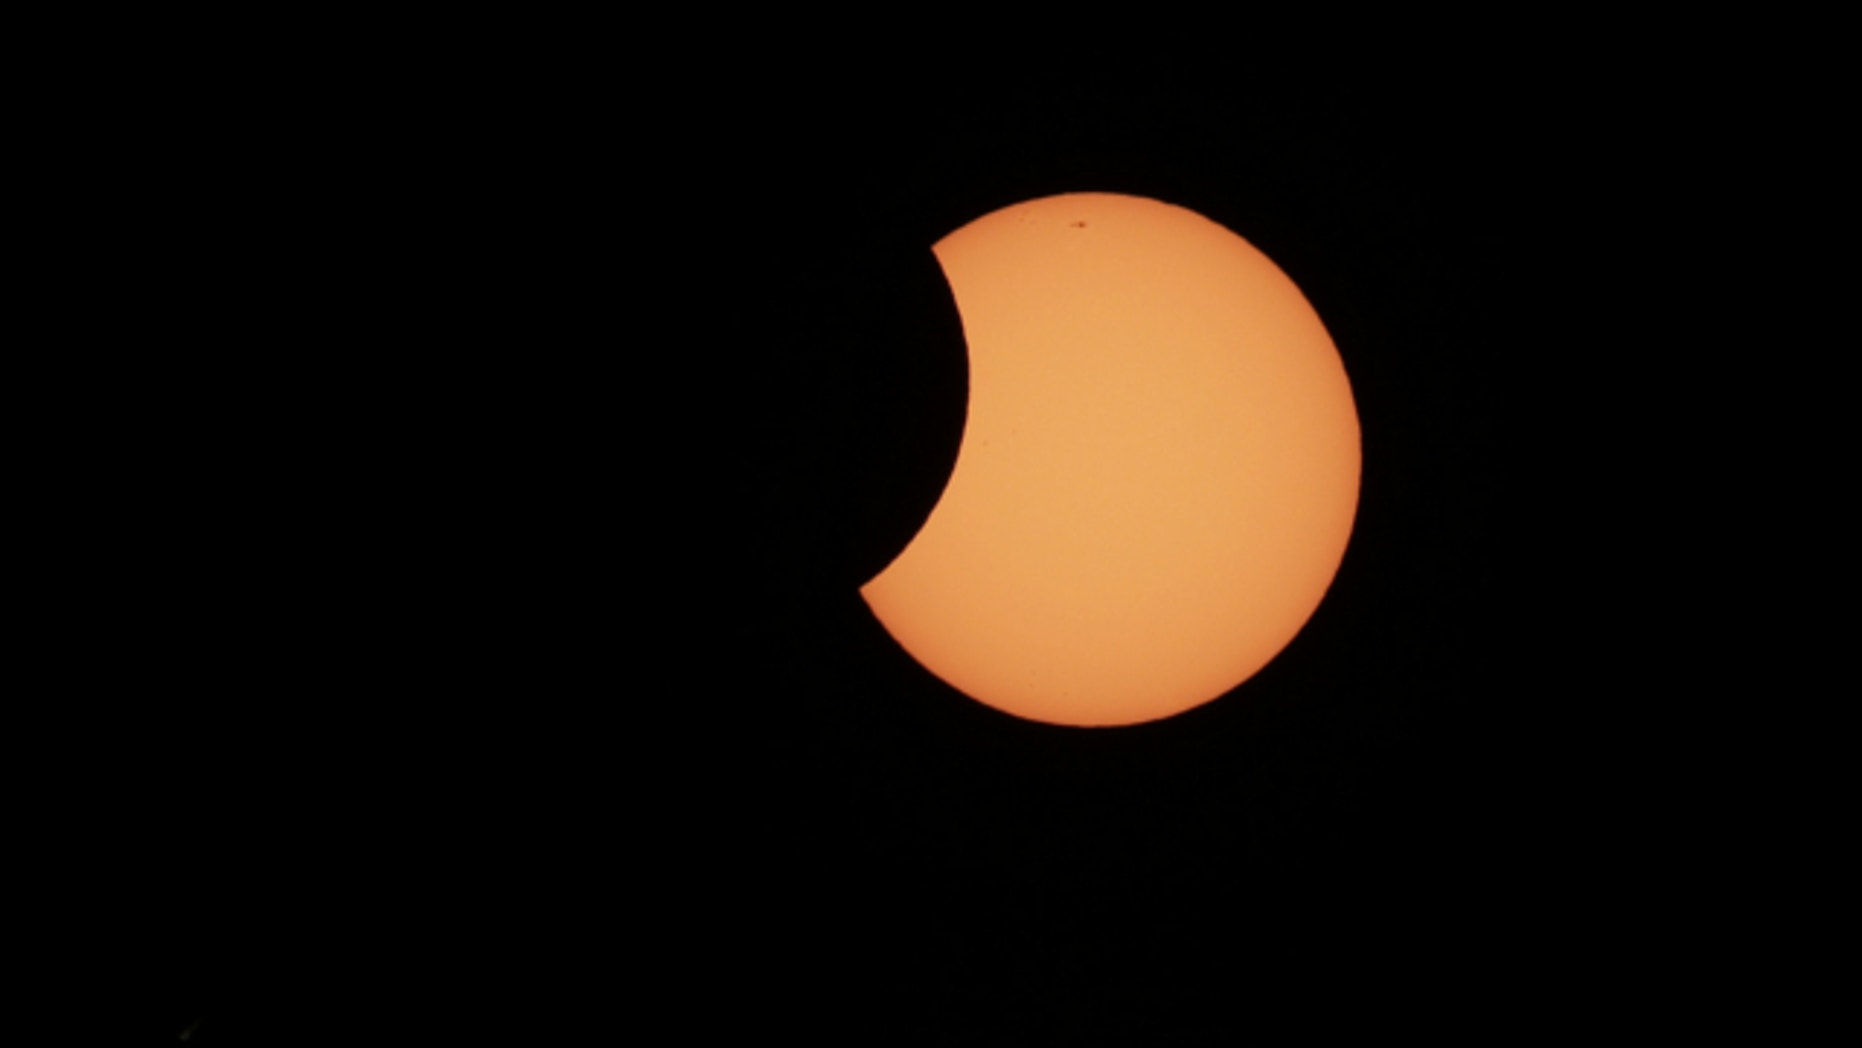 May 10, 2013: The moon begins to cross in front of the sun during a partial solar eclipse in Sydney.